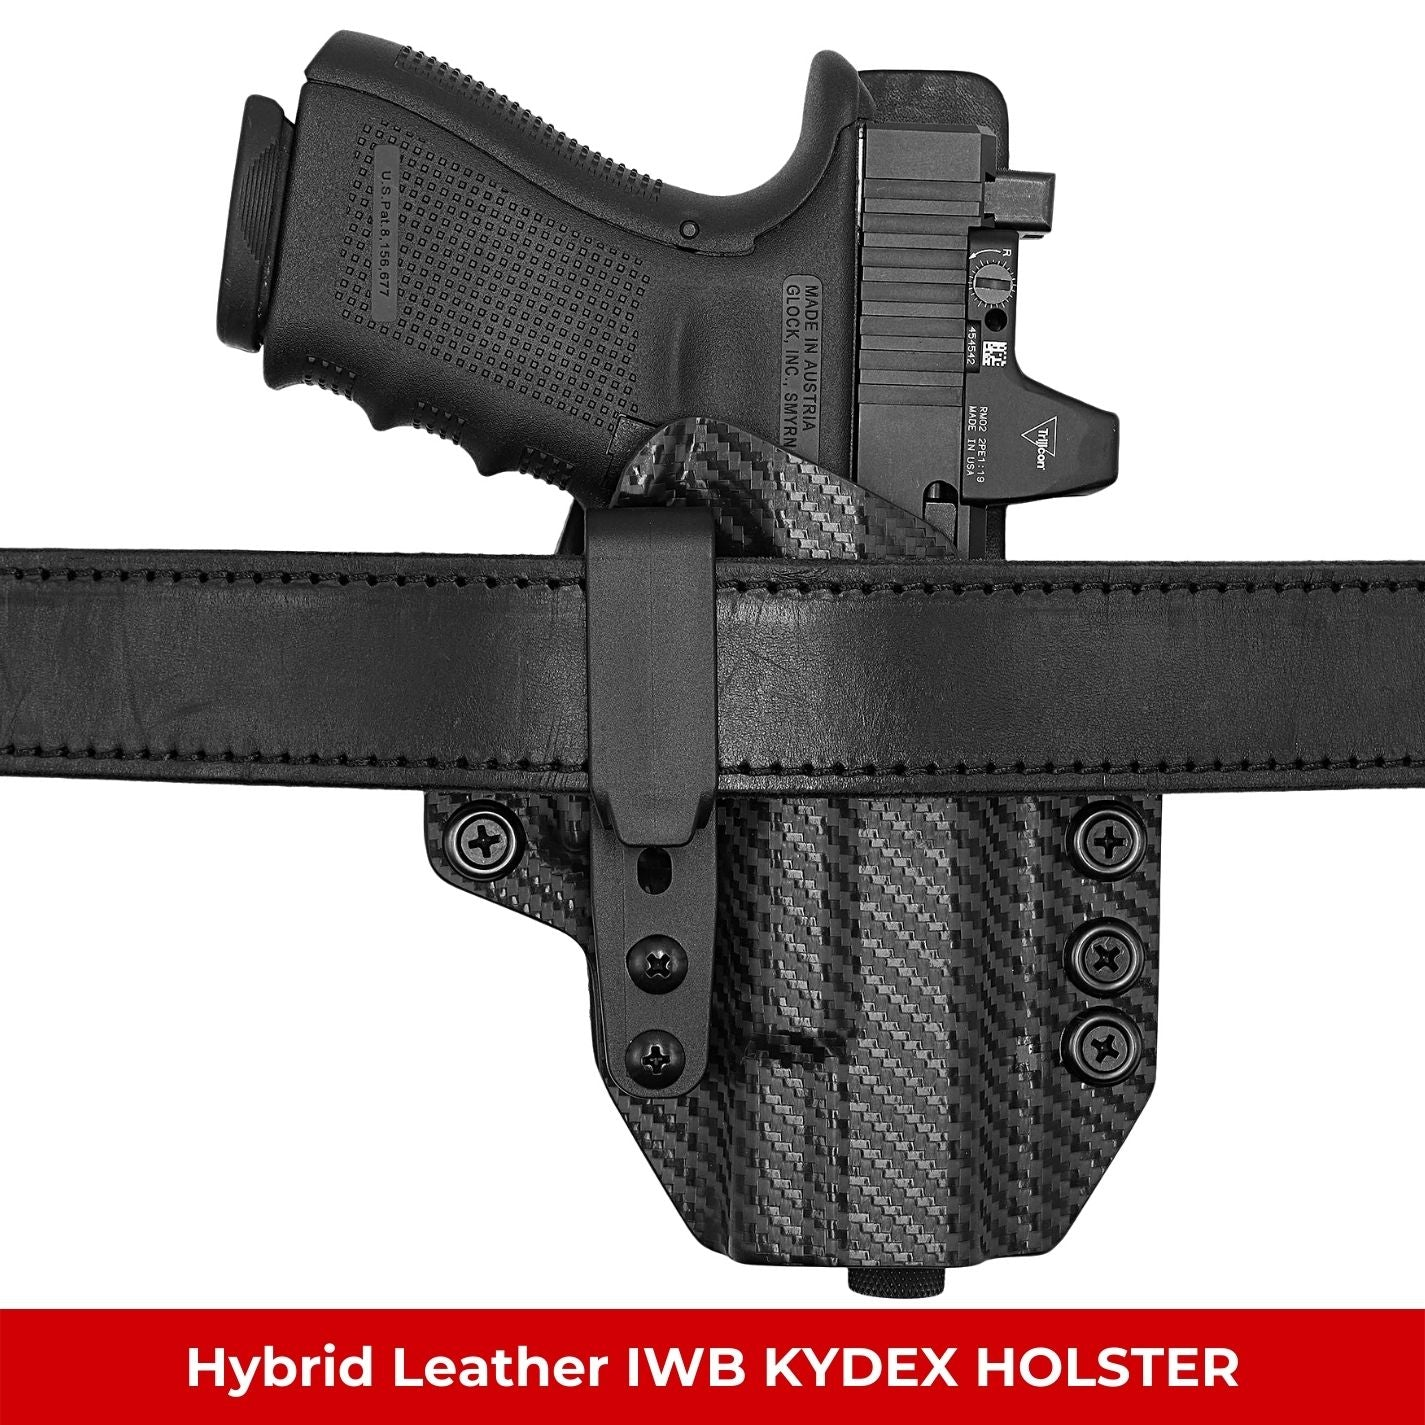 Hybrid Leather IWB KYDEX Holsters